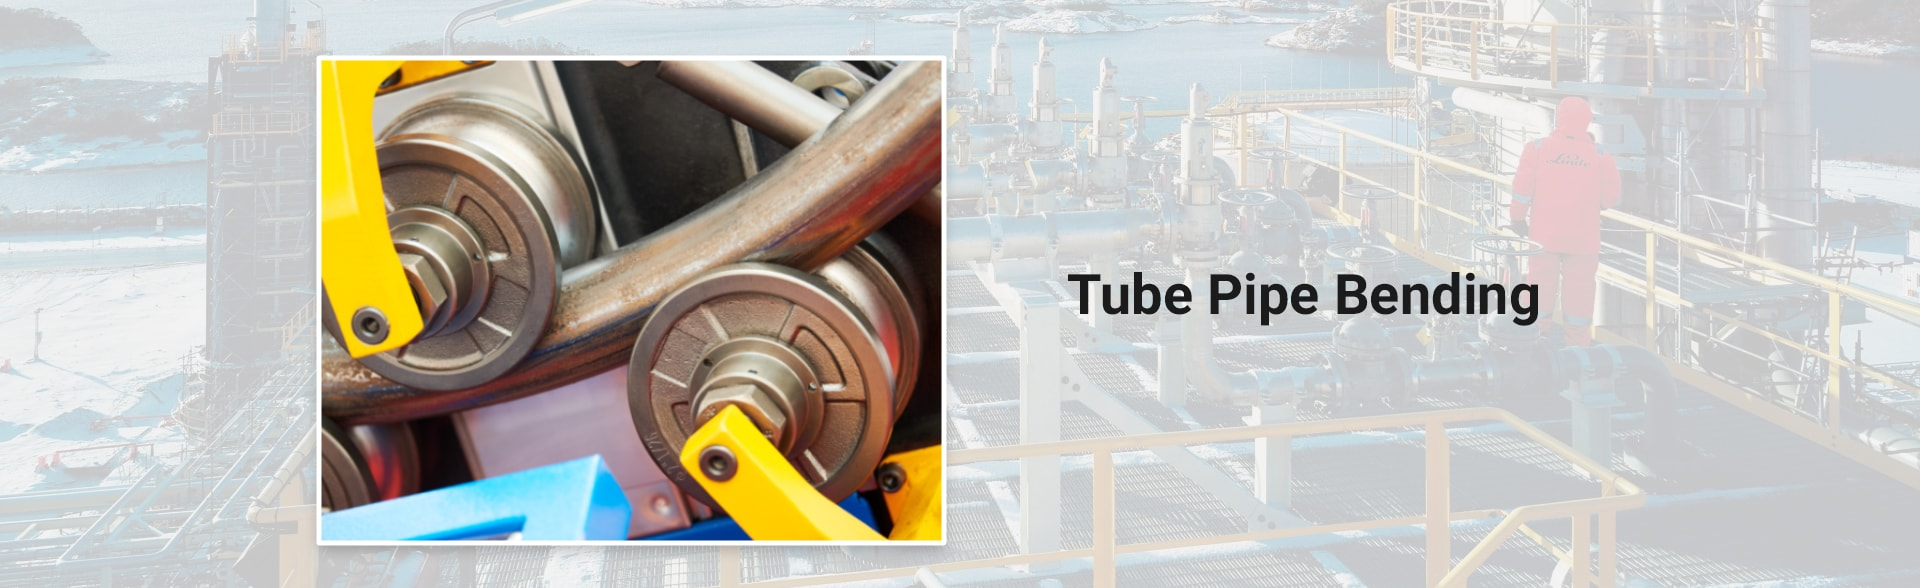 Tube Pipe Bending